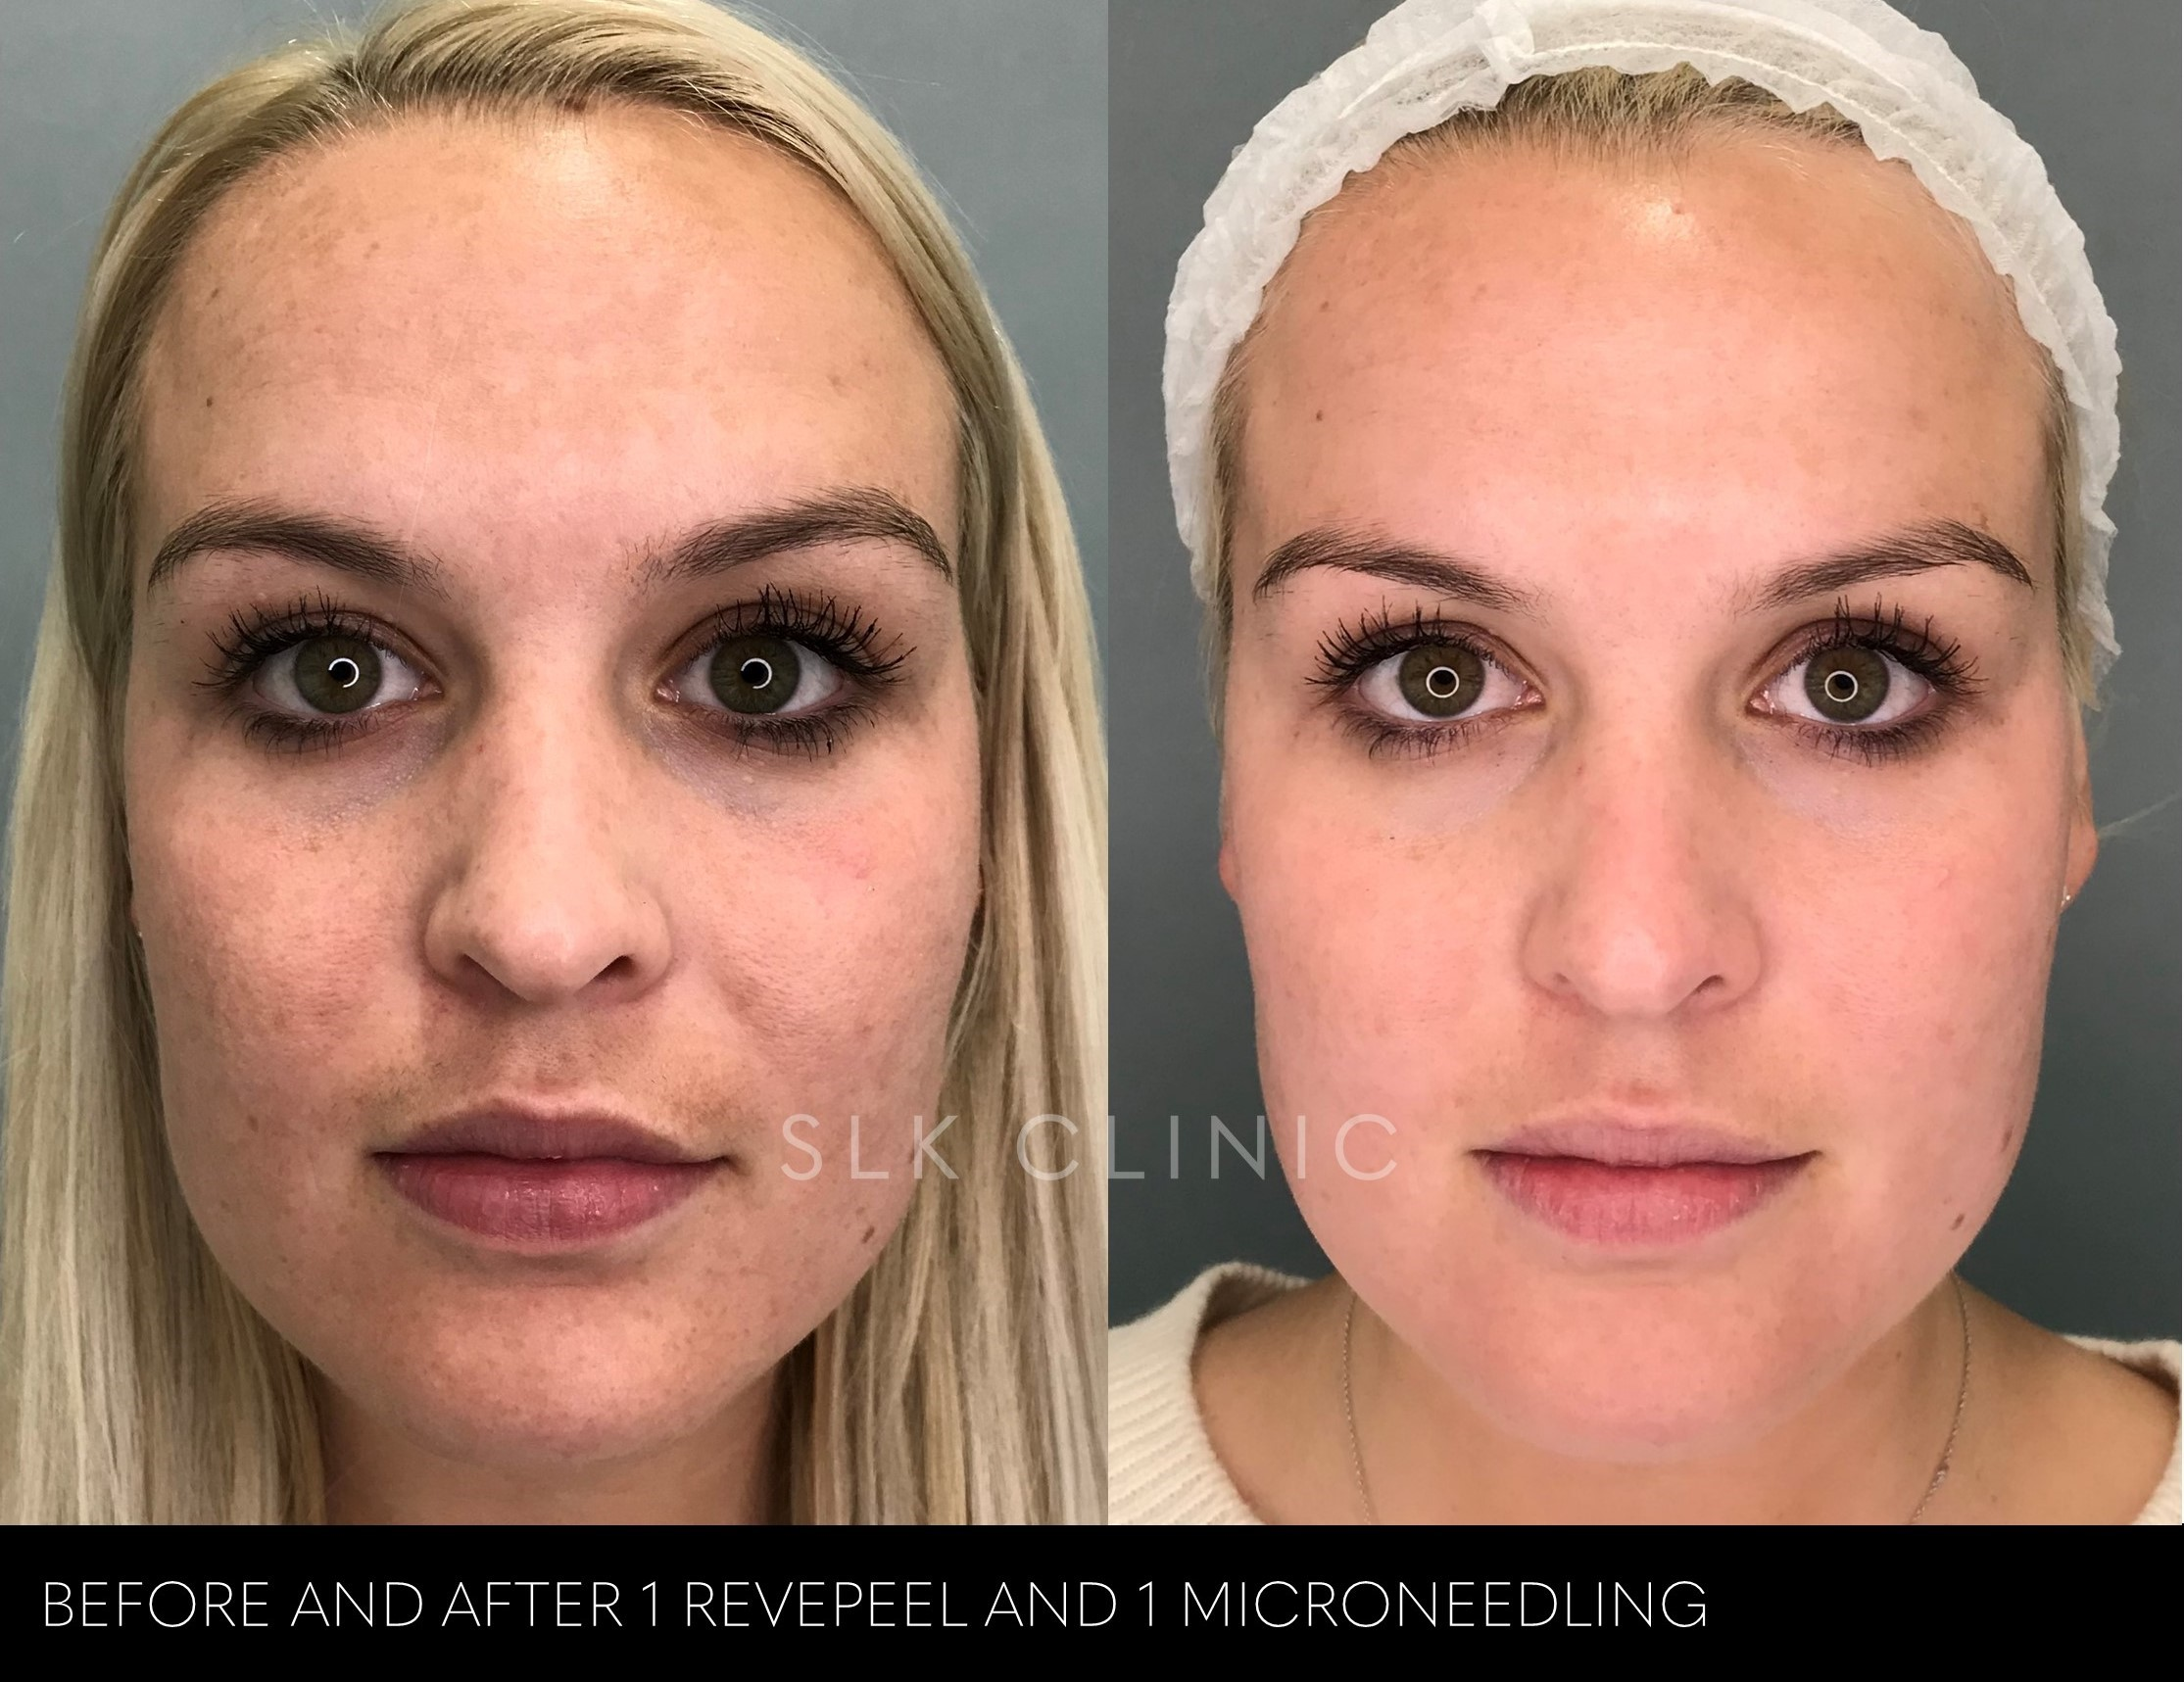 before and after photos of one revepeel and microneedling combination treatment